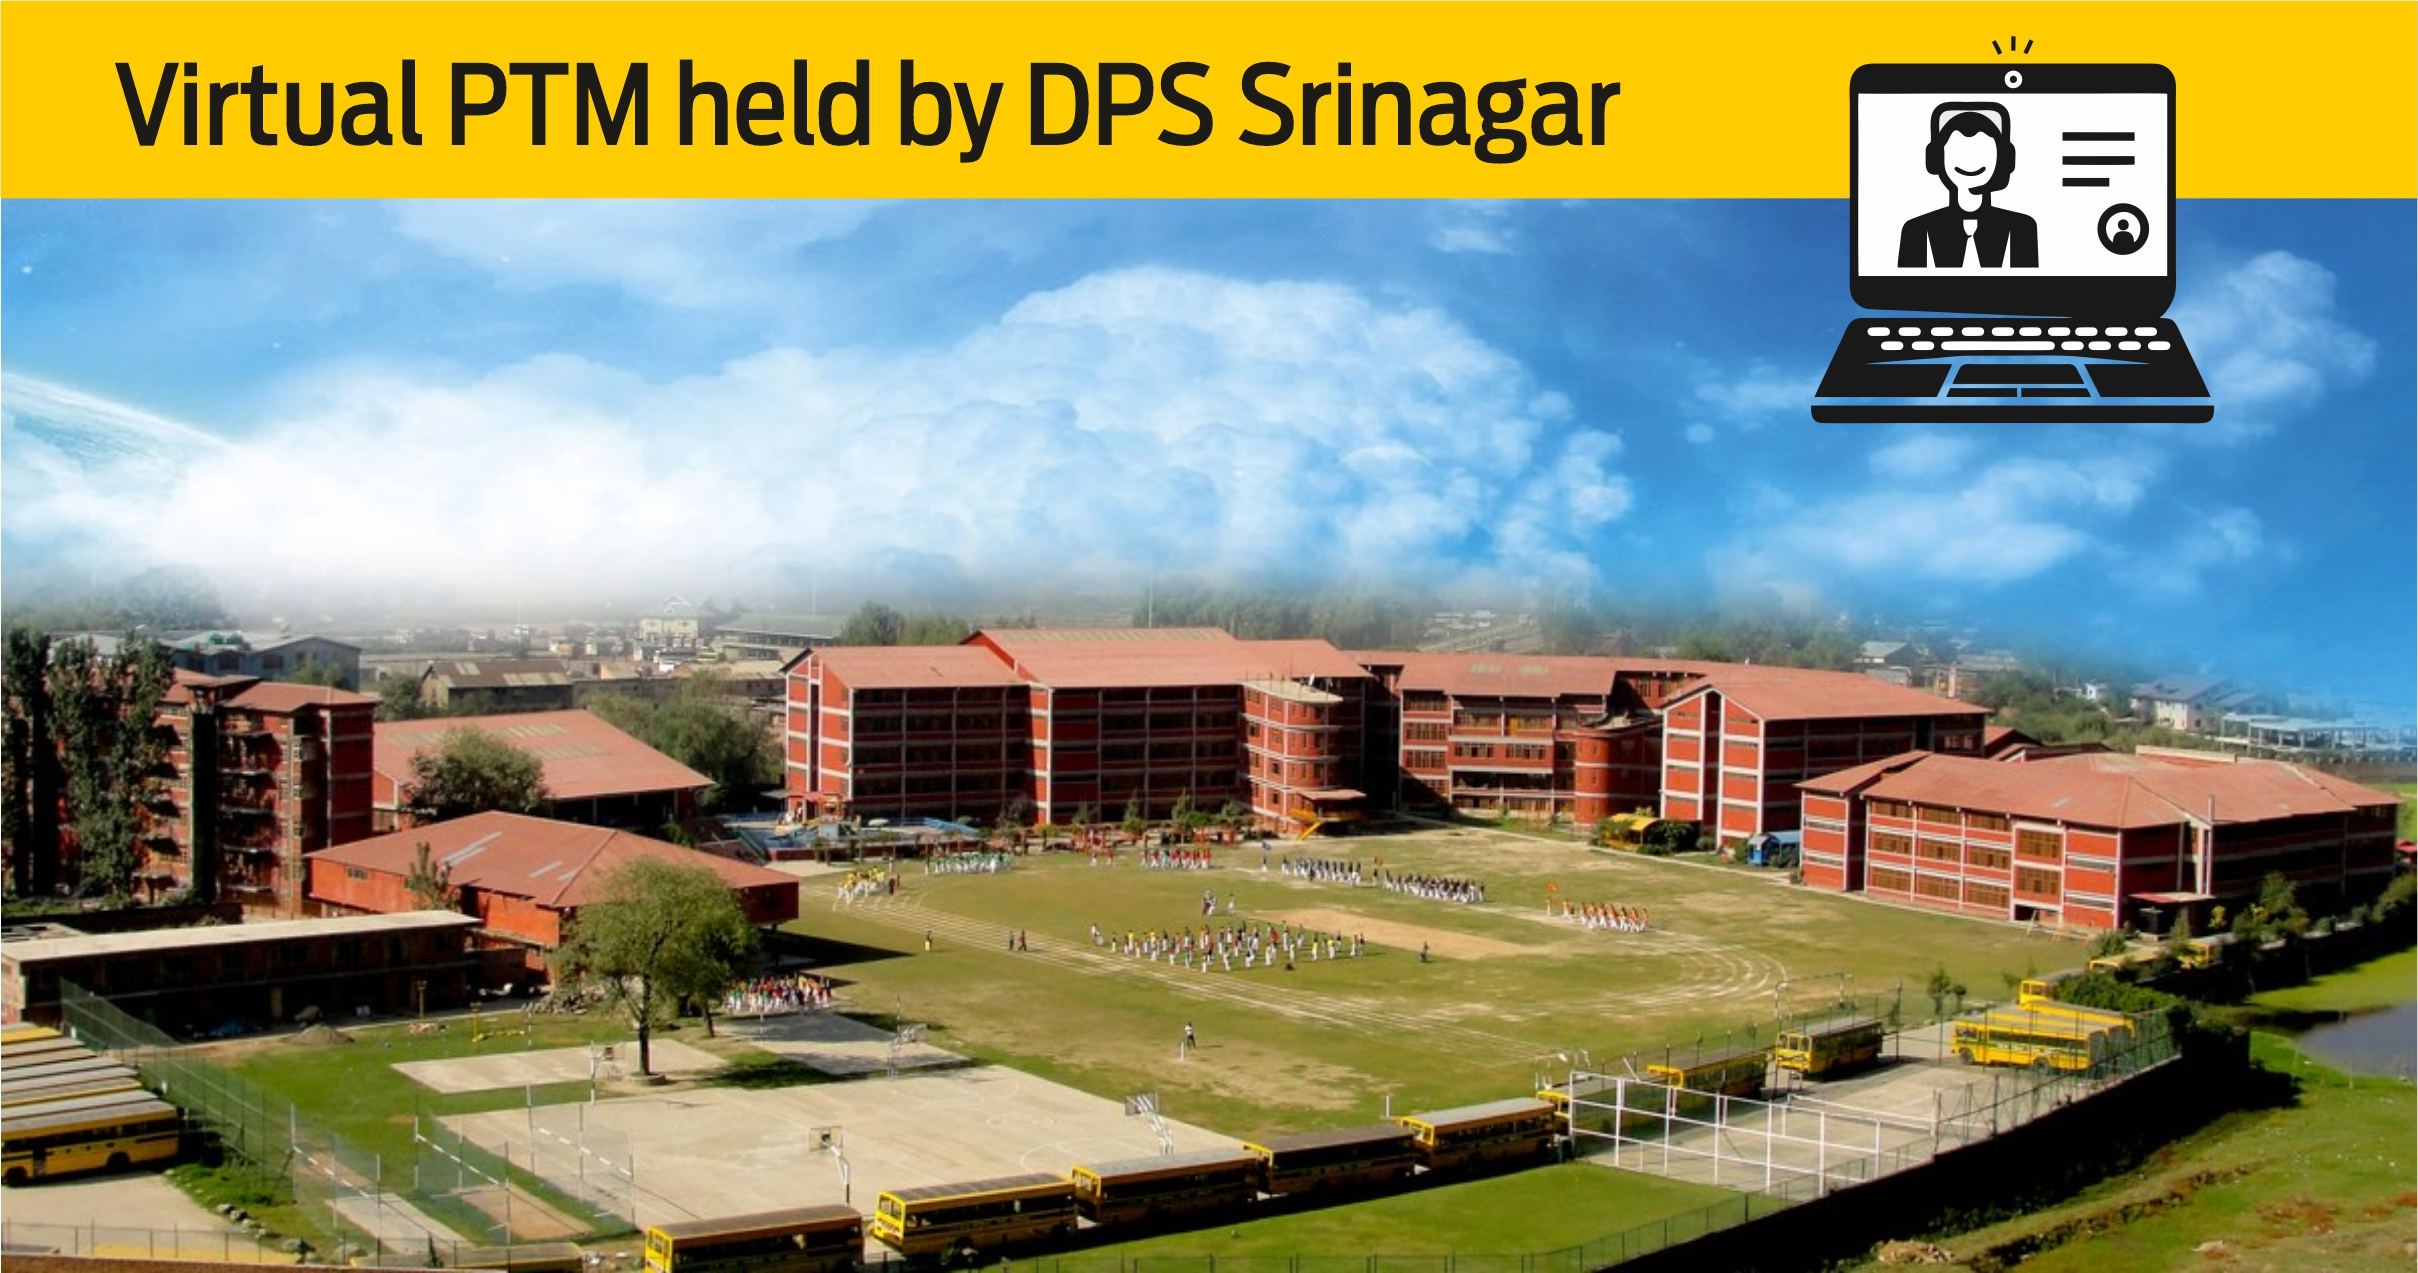 First of its kind Virtual PTM held by DPS Srinagar